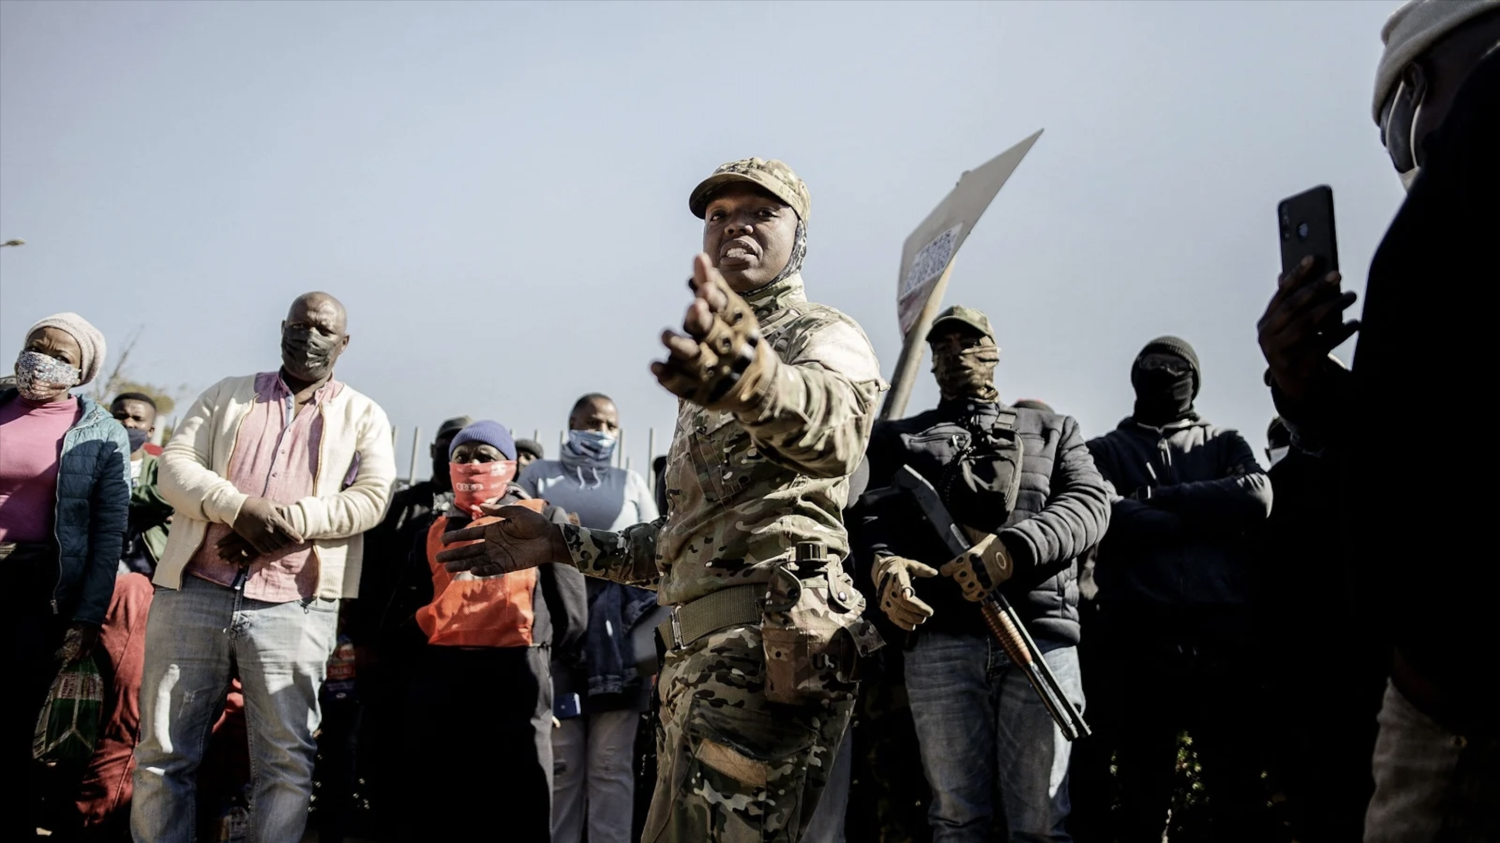 Armed Township Communities are a National Security Asset